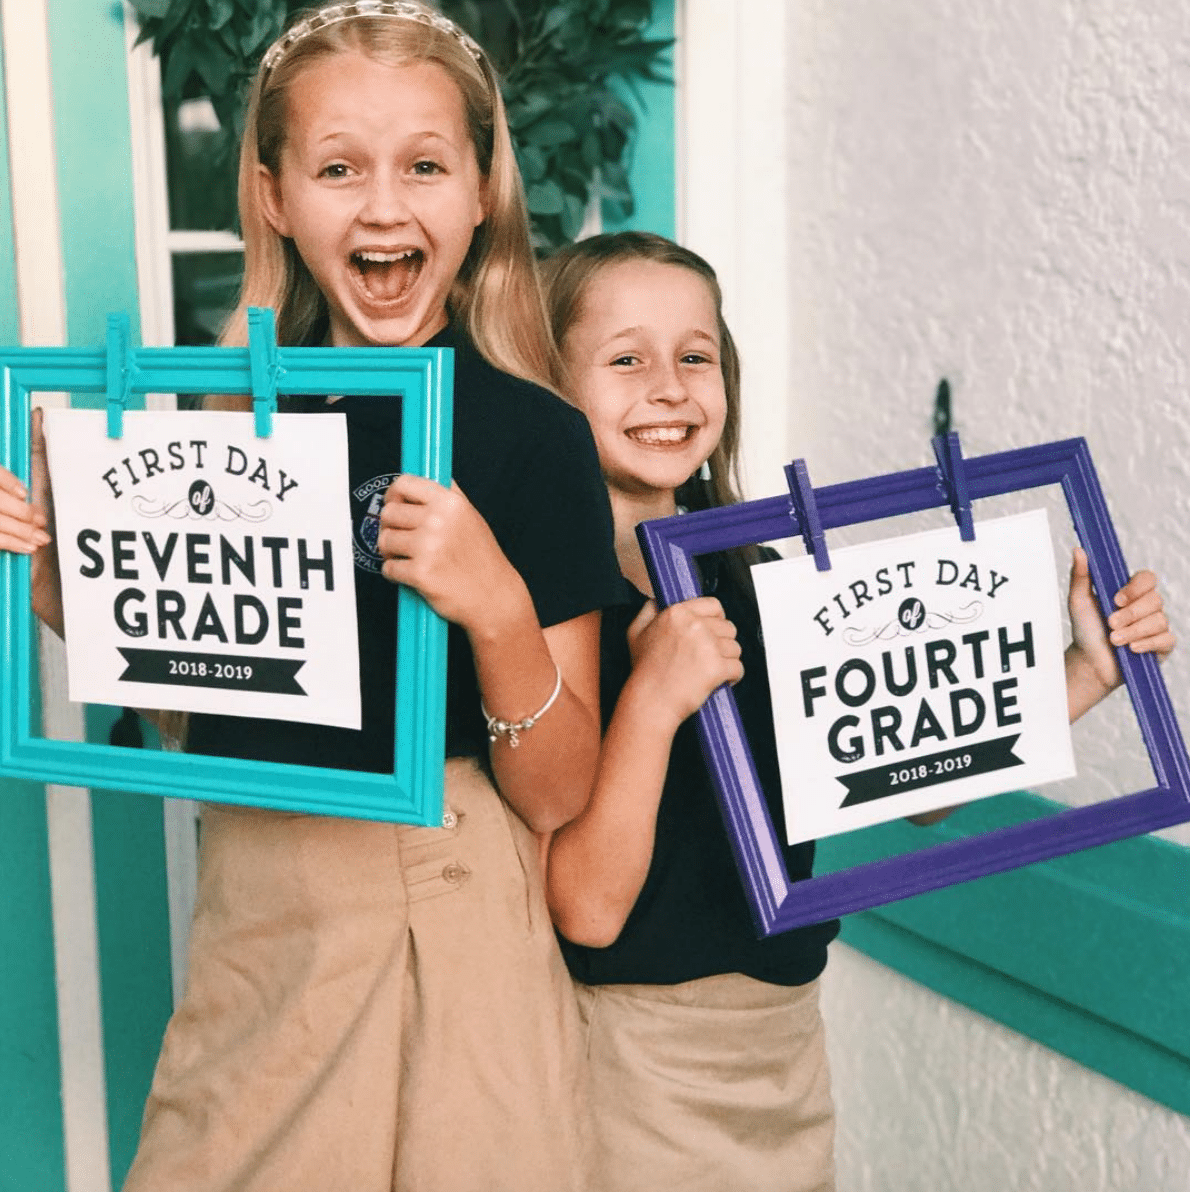 The first day of school is a big deal no matter what grade.